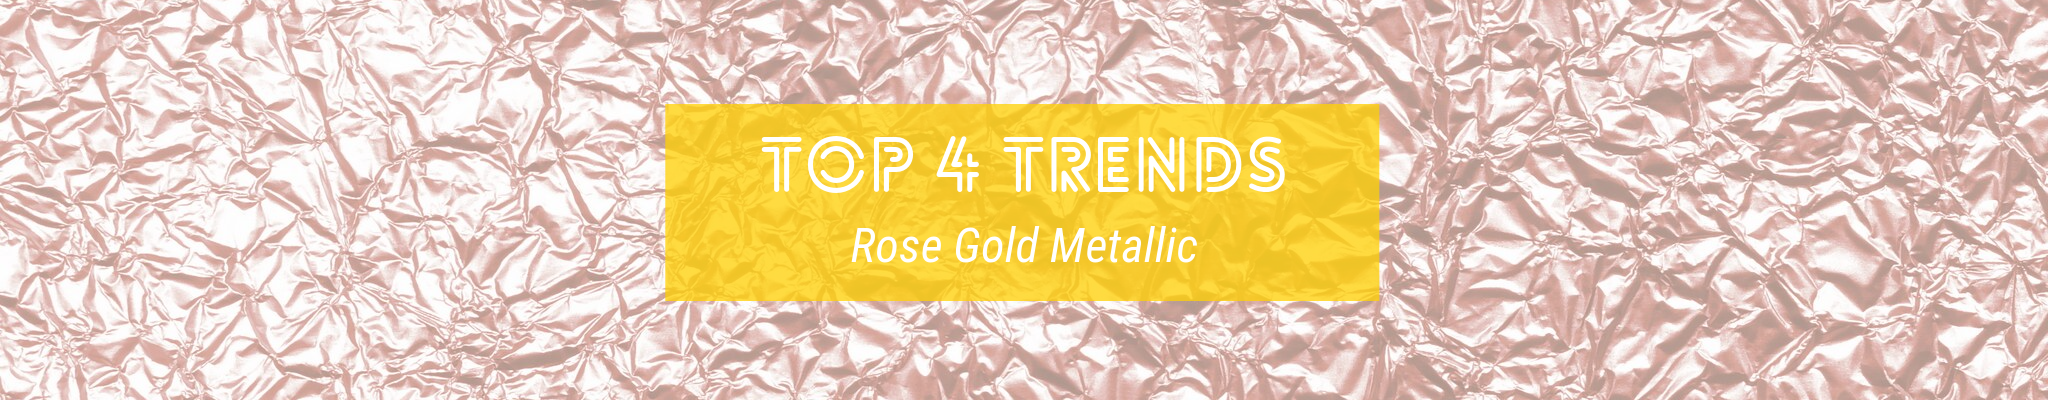 Rose Gold Wallpaper - Top Trends